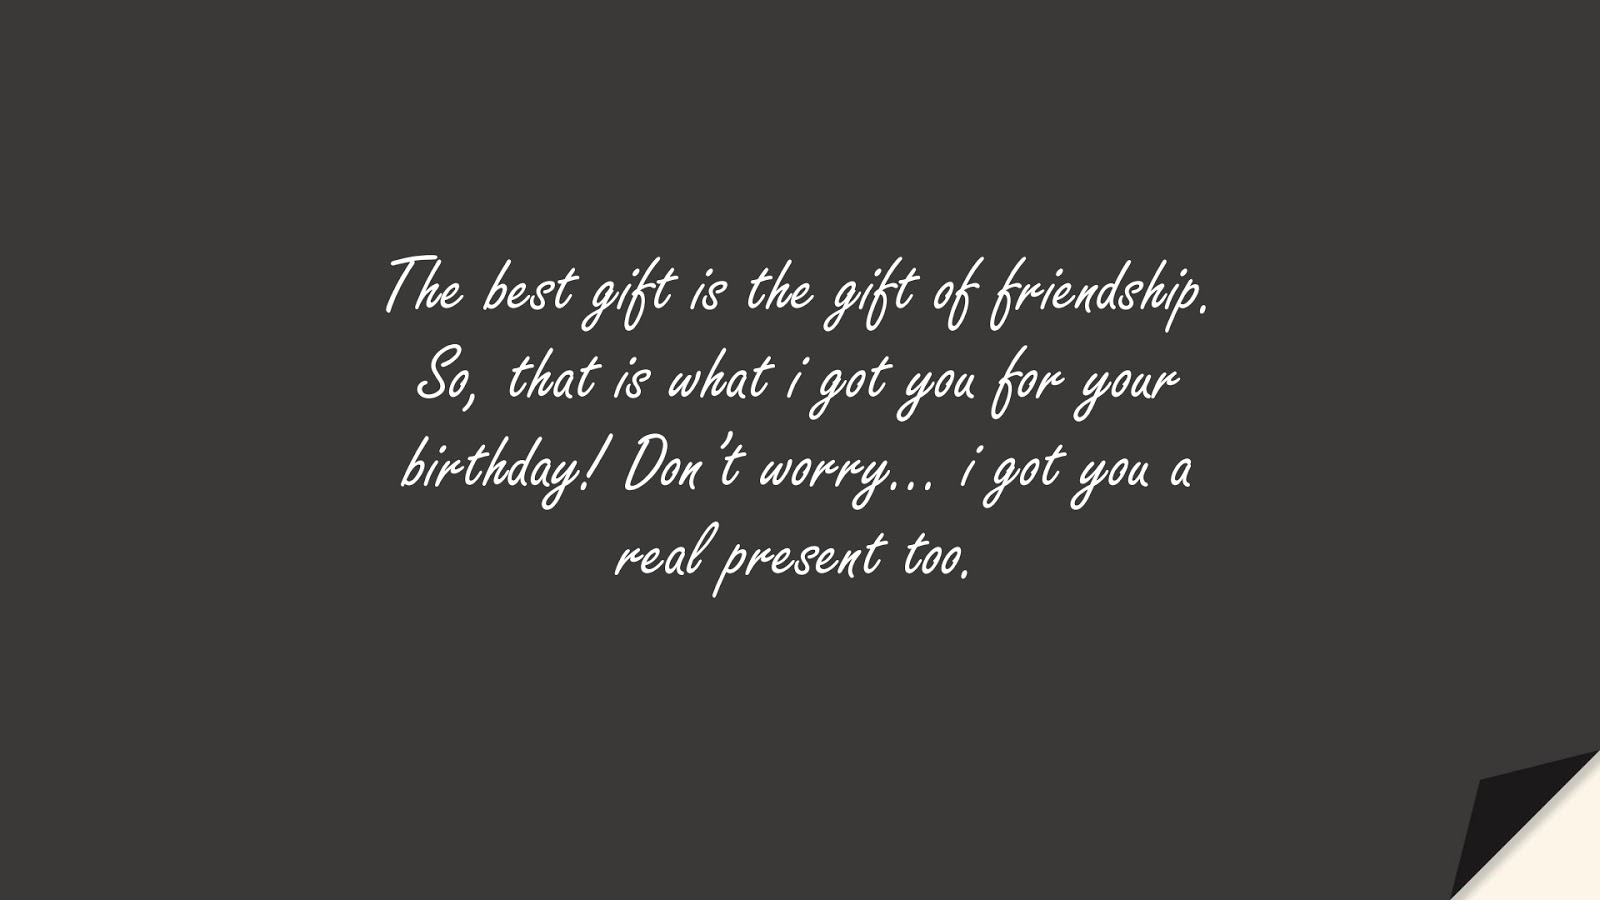 The best gift is the gift of friendship. So, that is what i got you for your birthday! Don't worry… i got you a real present too.FALSE